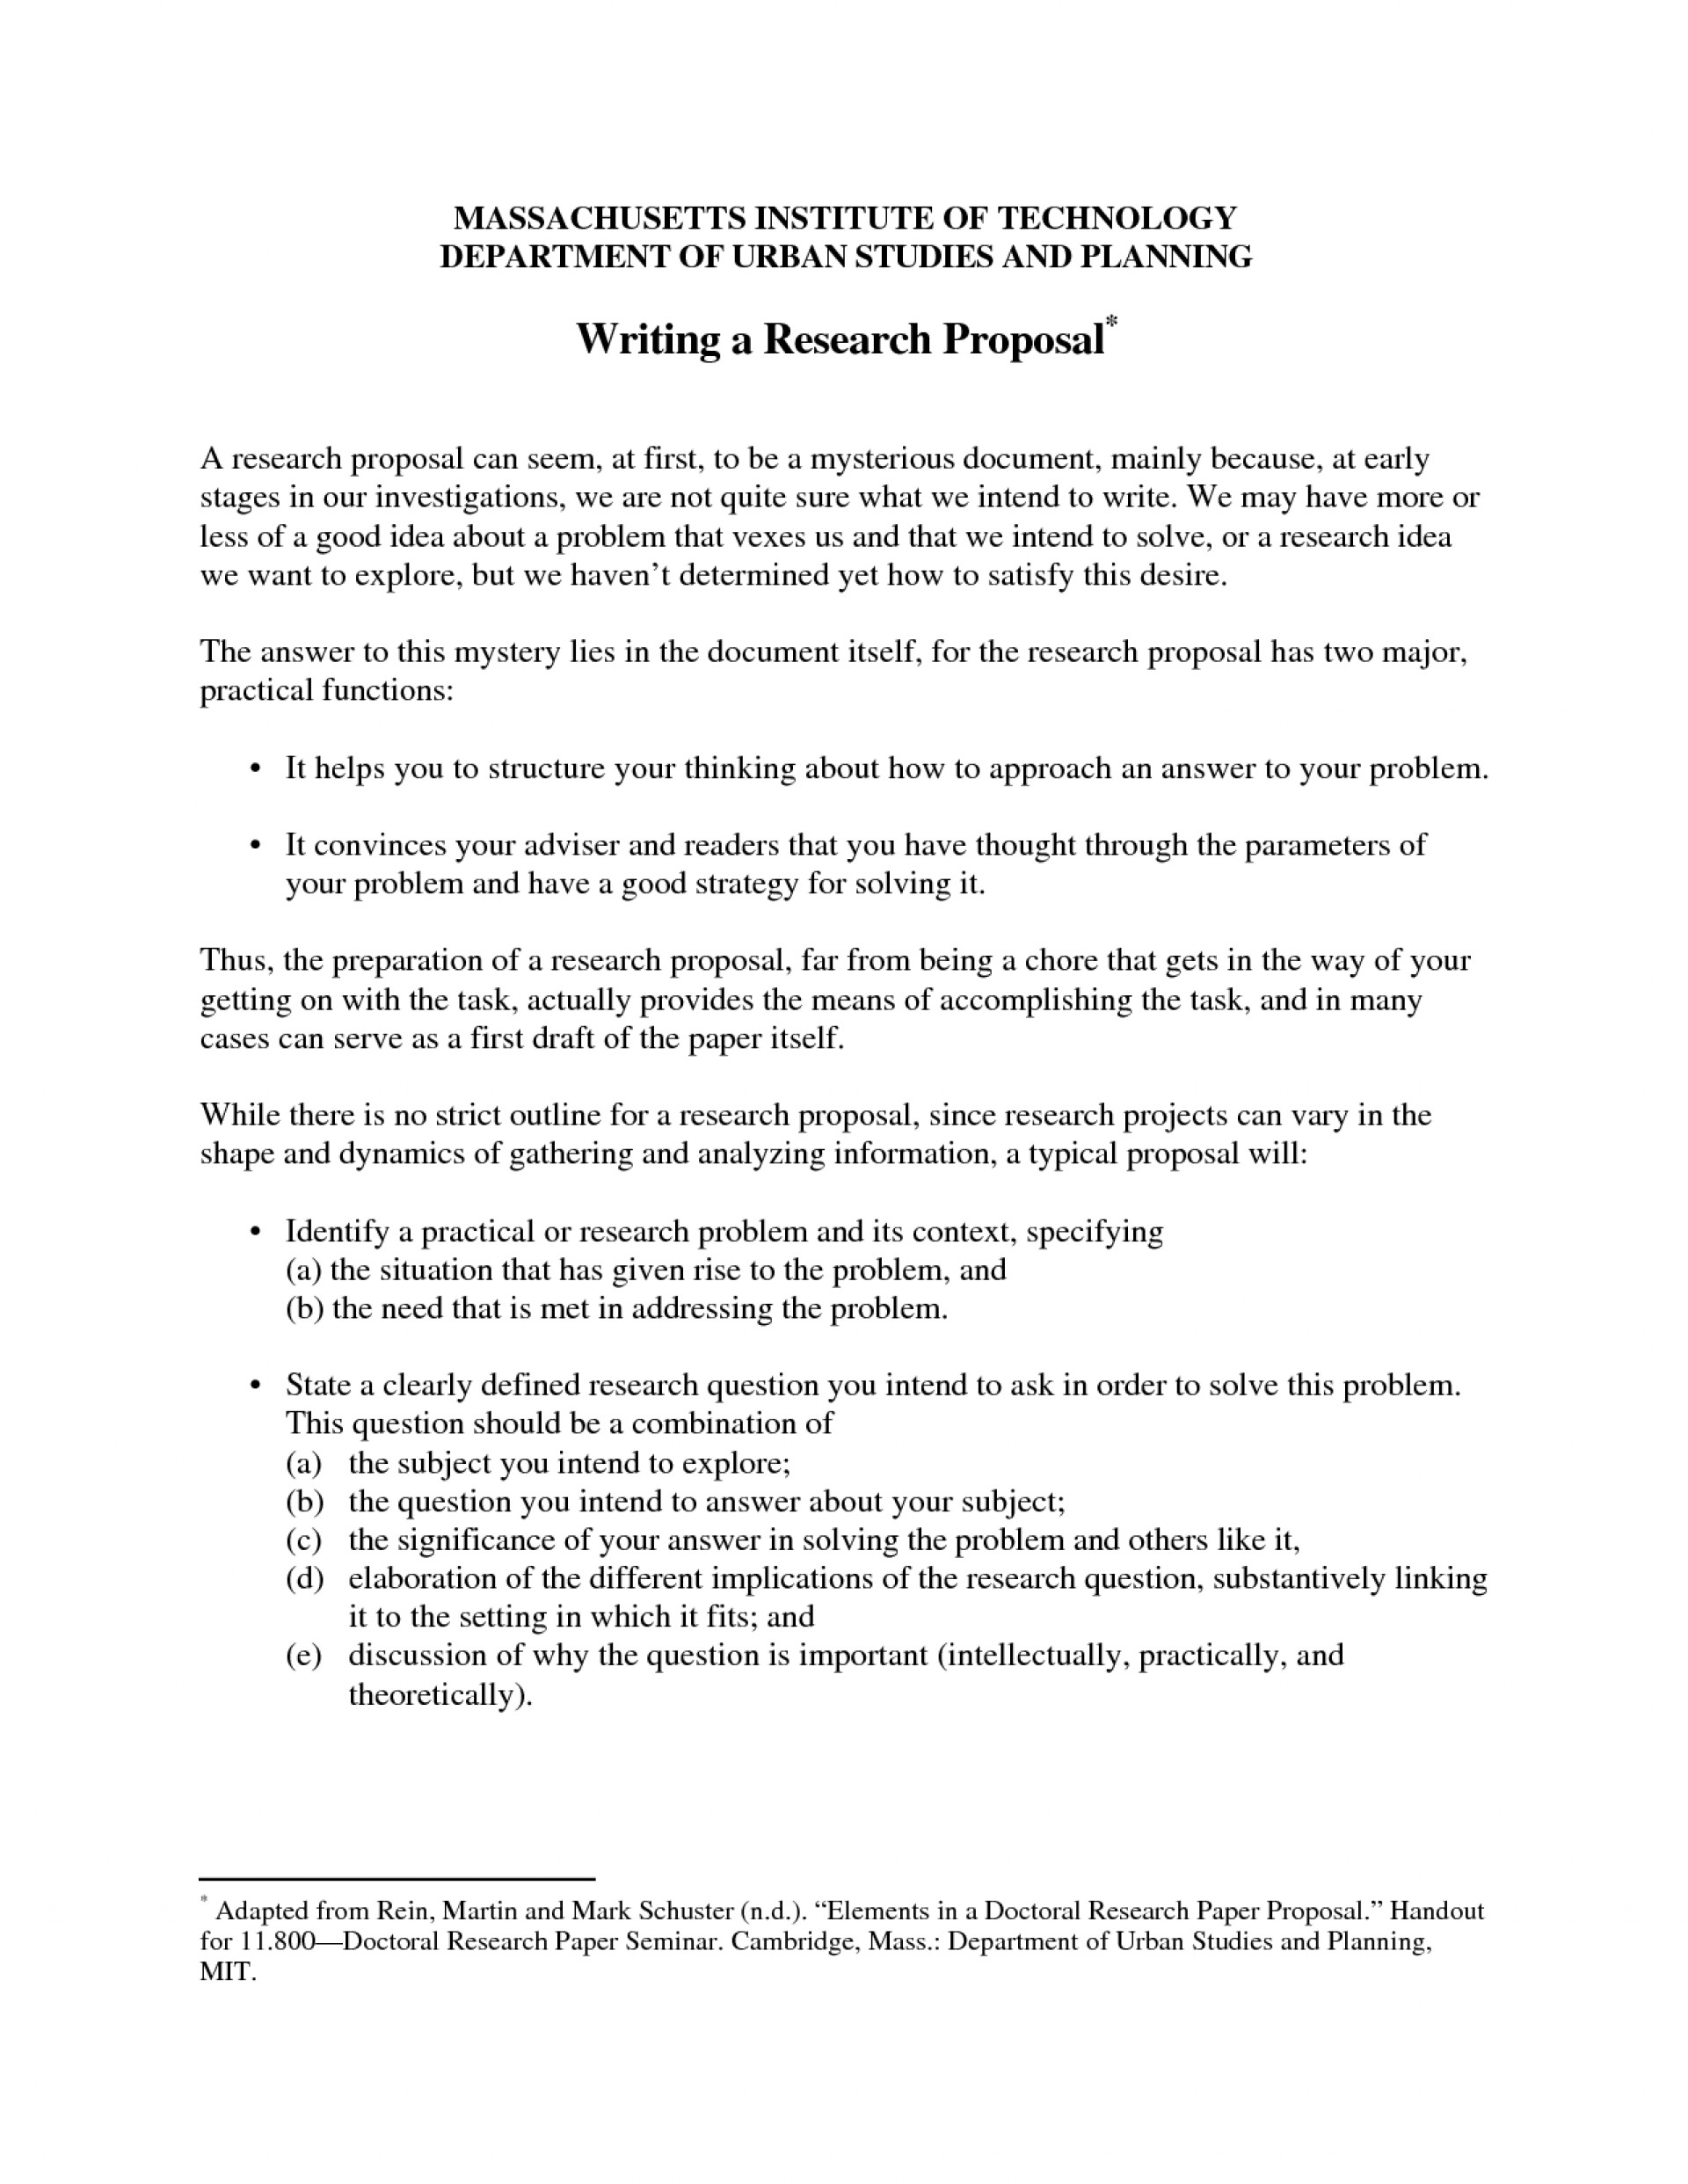 014 Diabetes Research Paper Outline What Does Proposal Look Like 629236 Stirring Sample For Type 2 1920